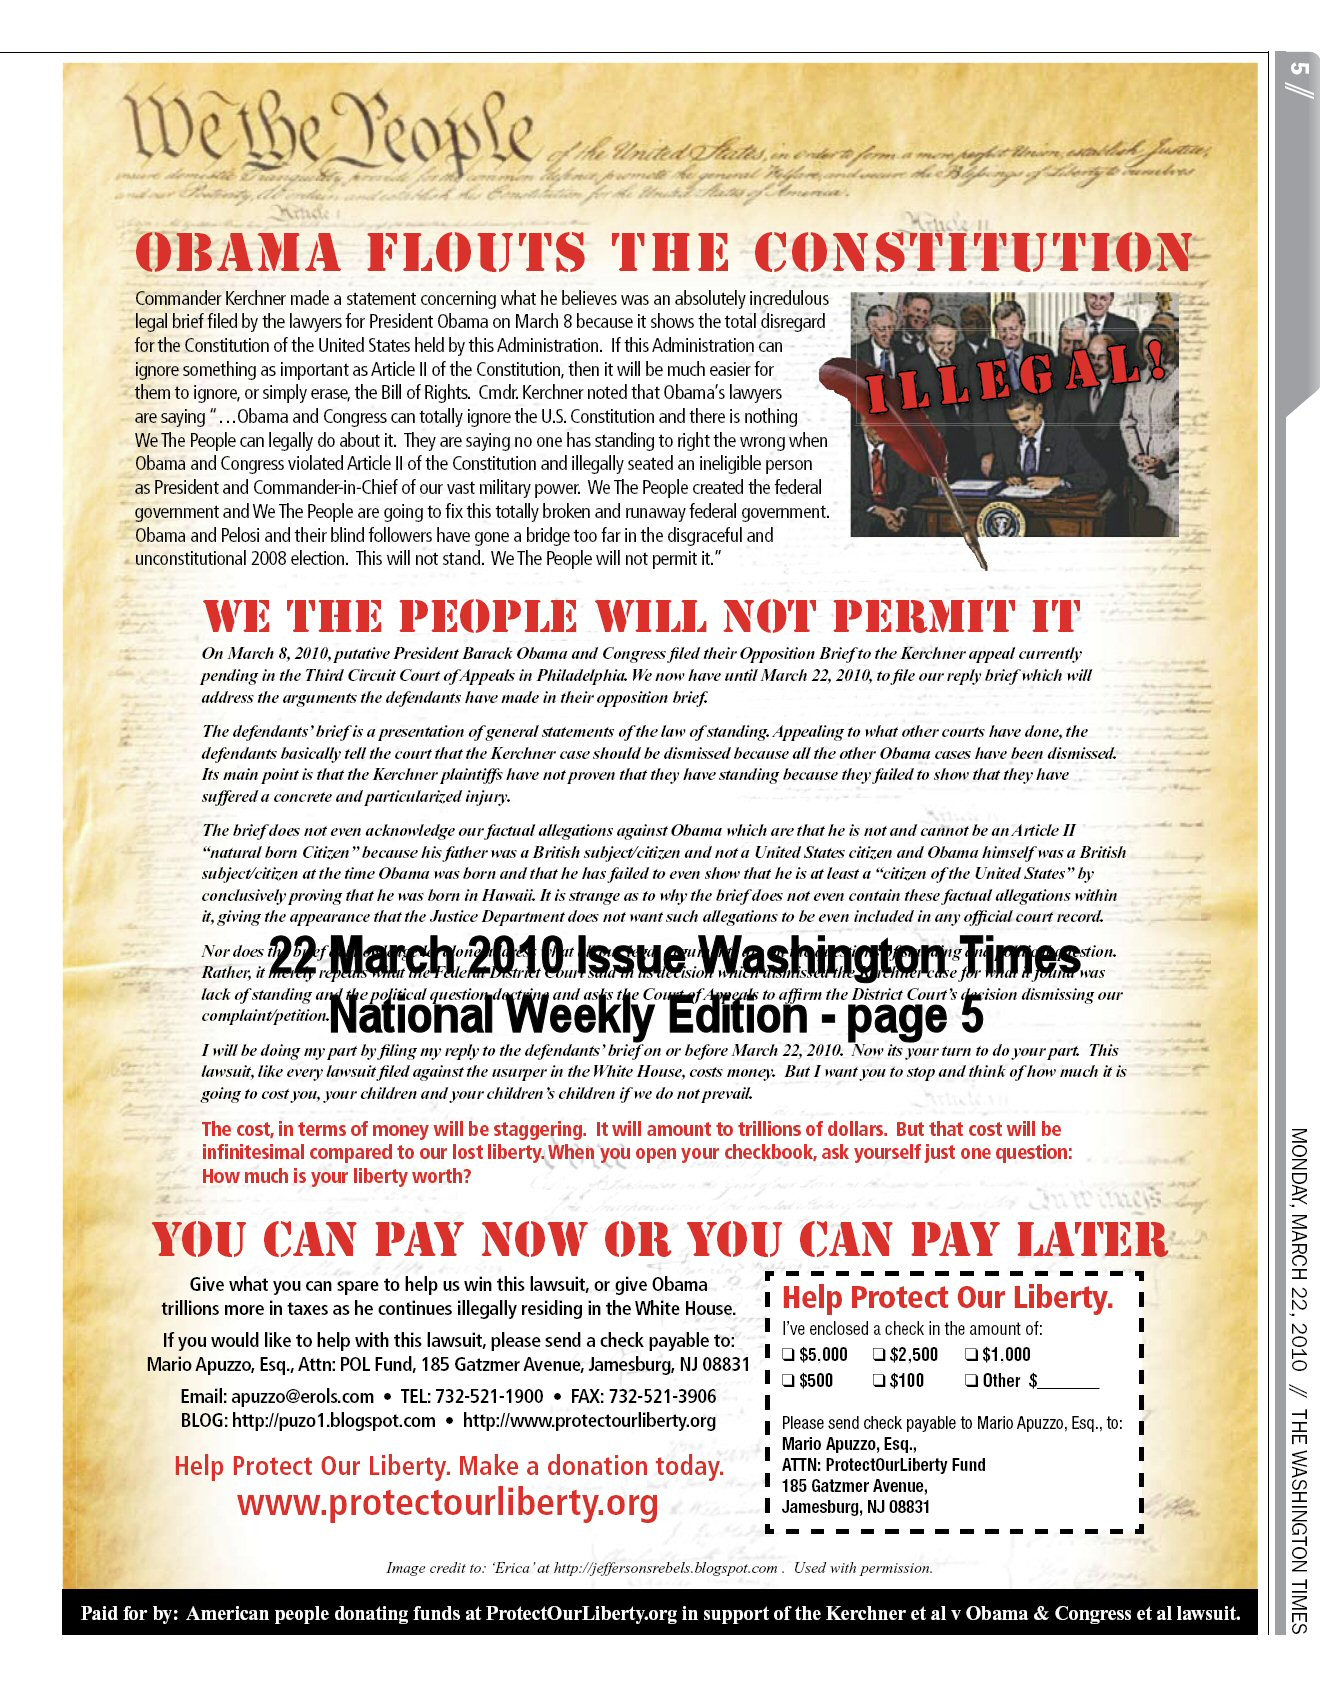 Obama Flouts Constitution